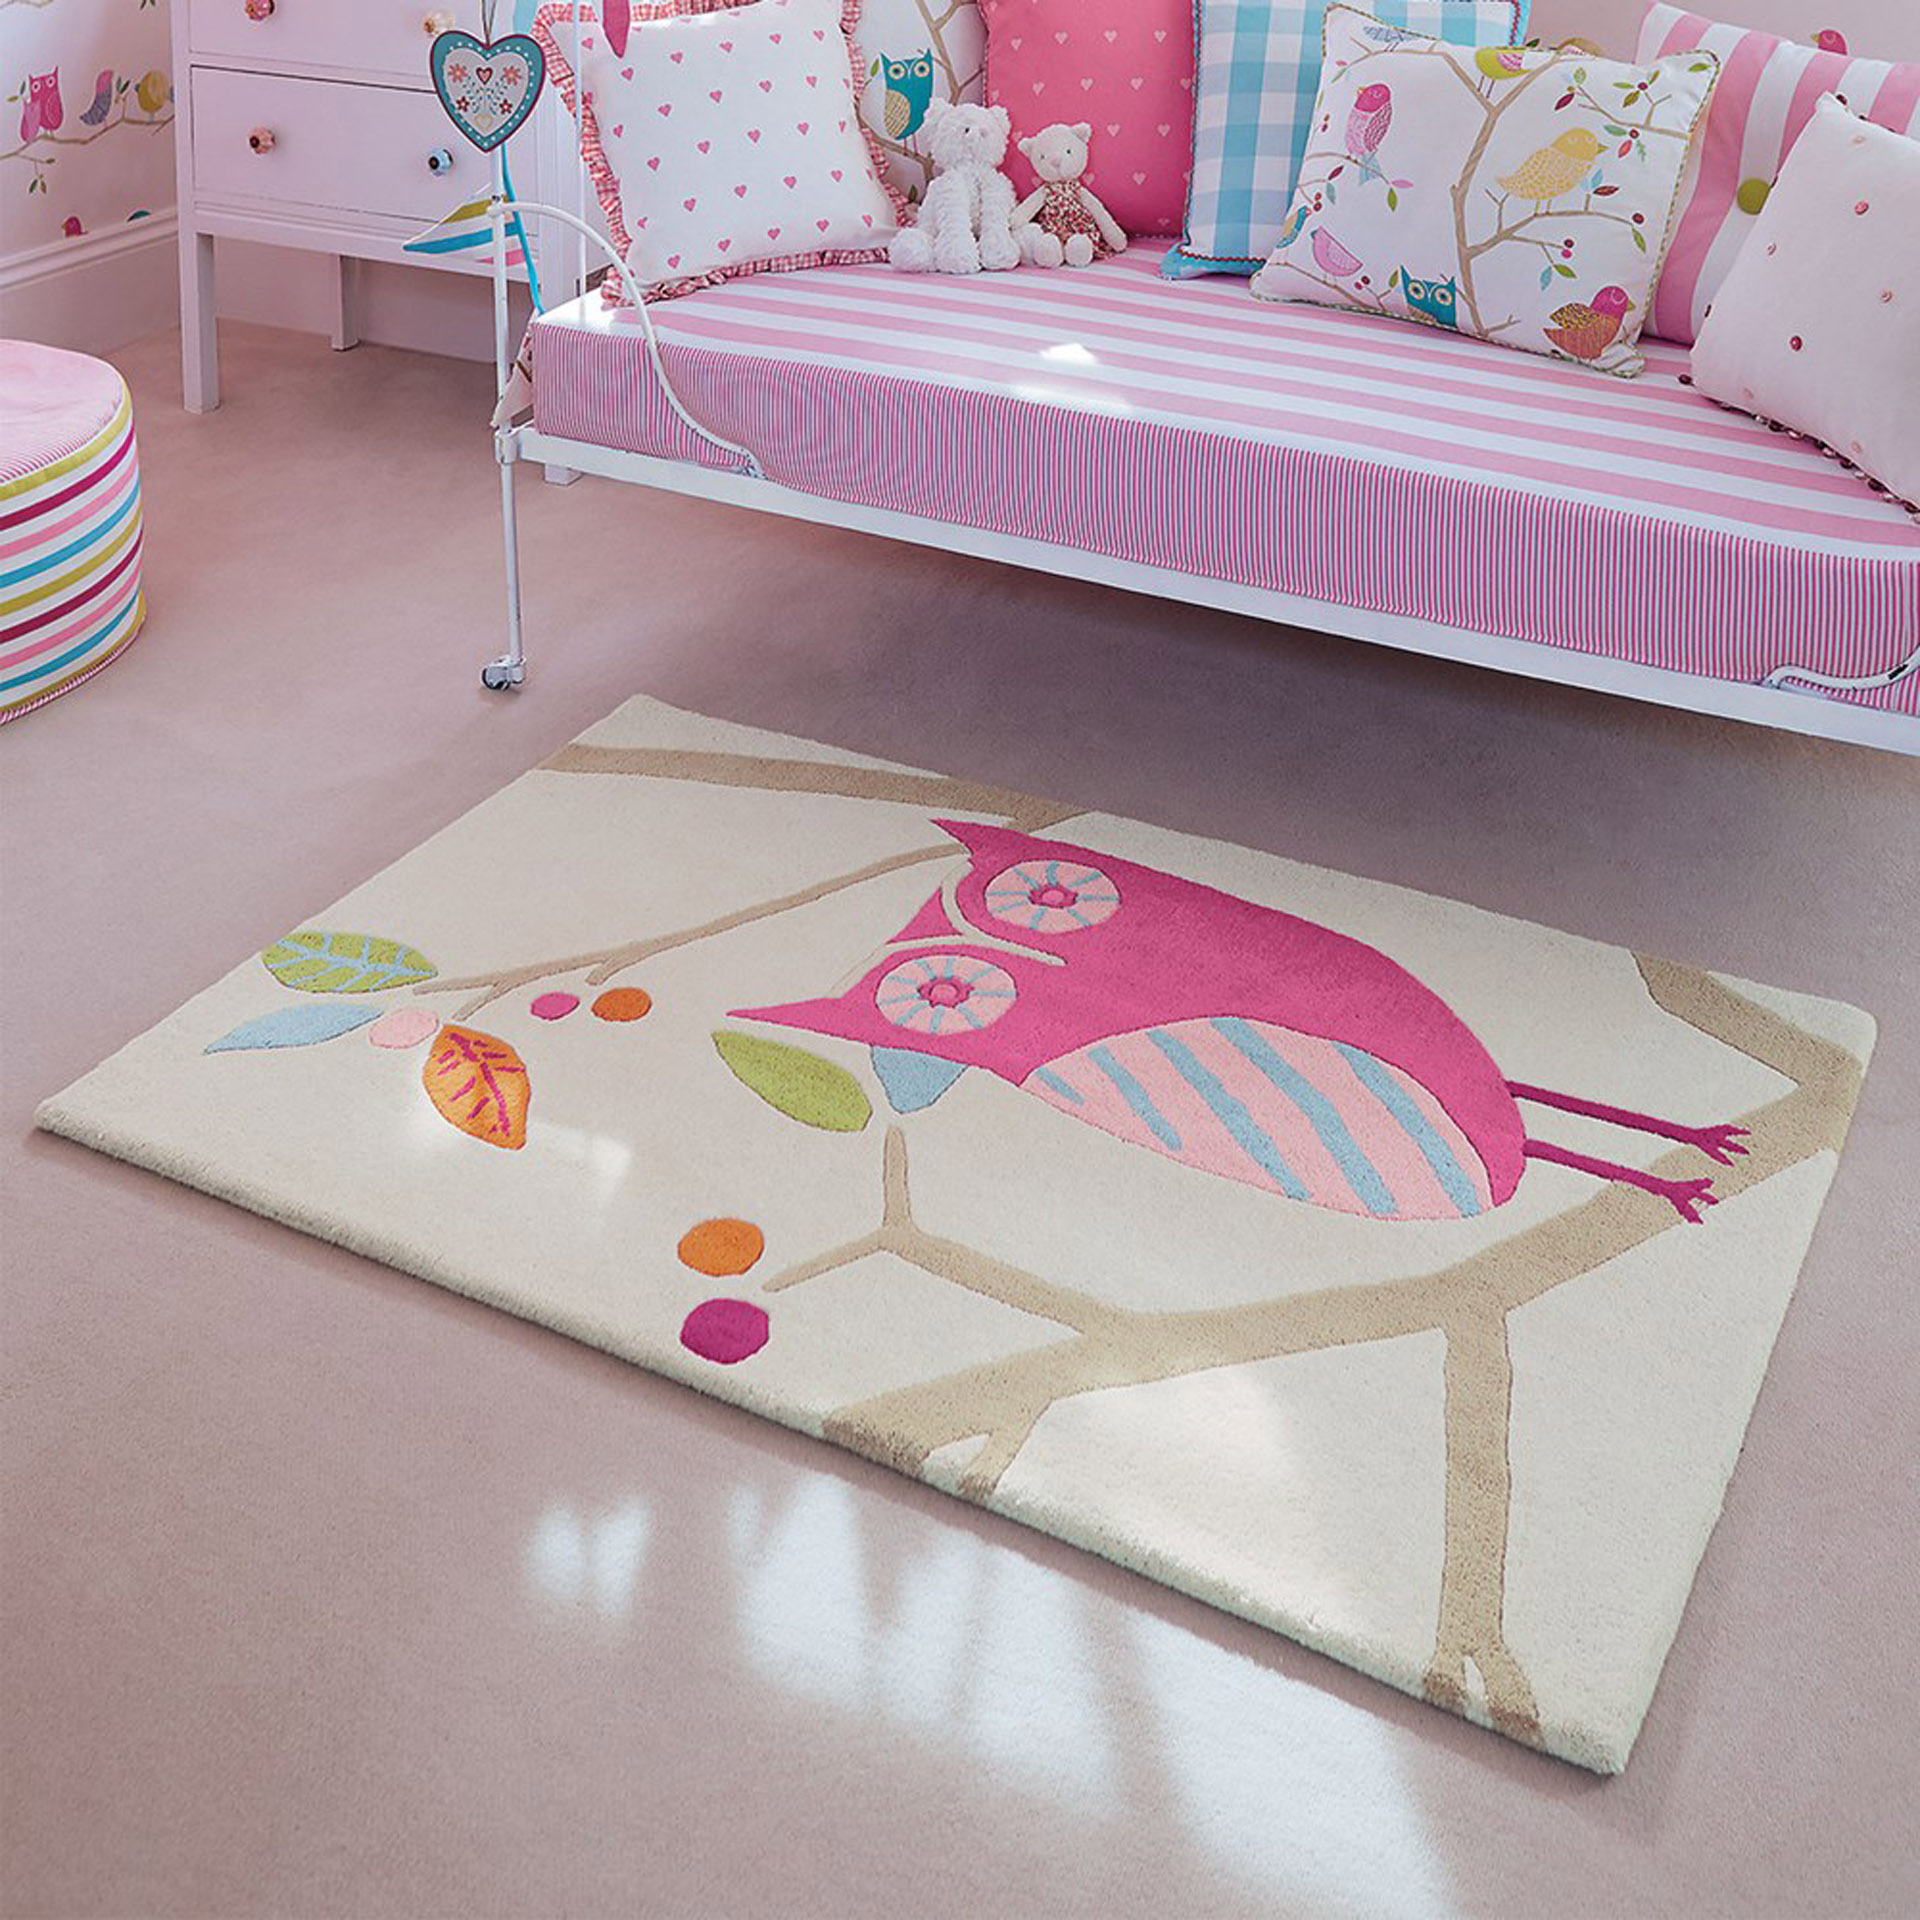 Kids Harlequin Harlequin Kids Candy 42202 Rug